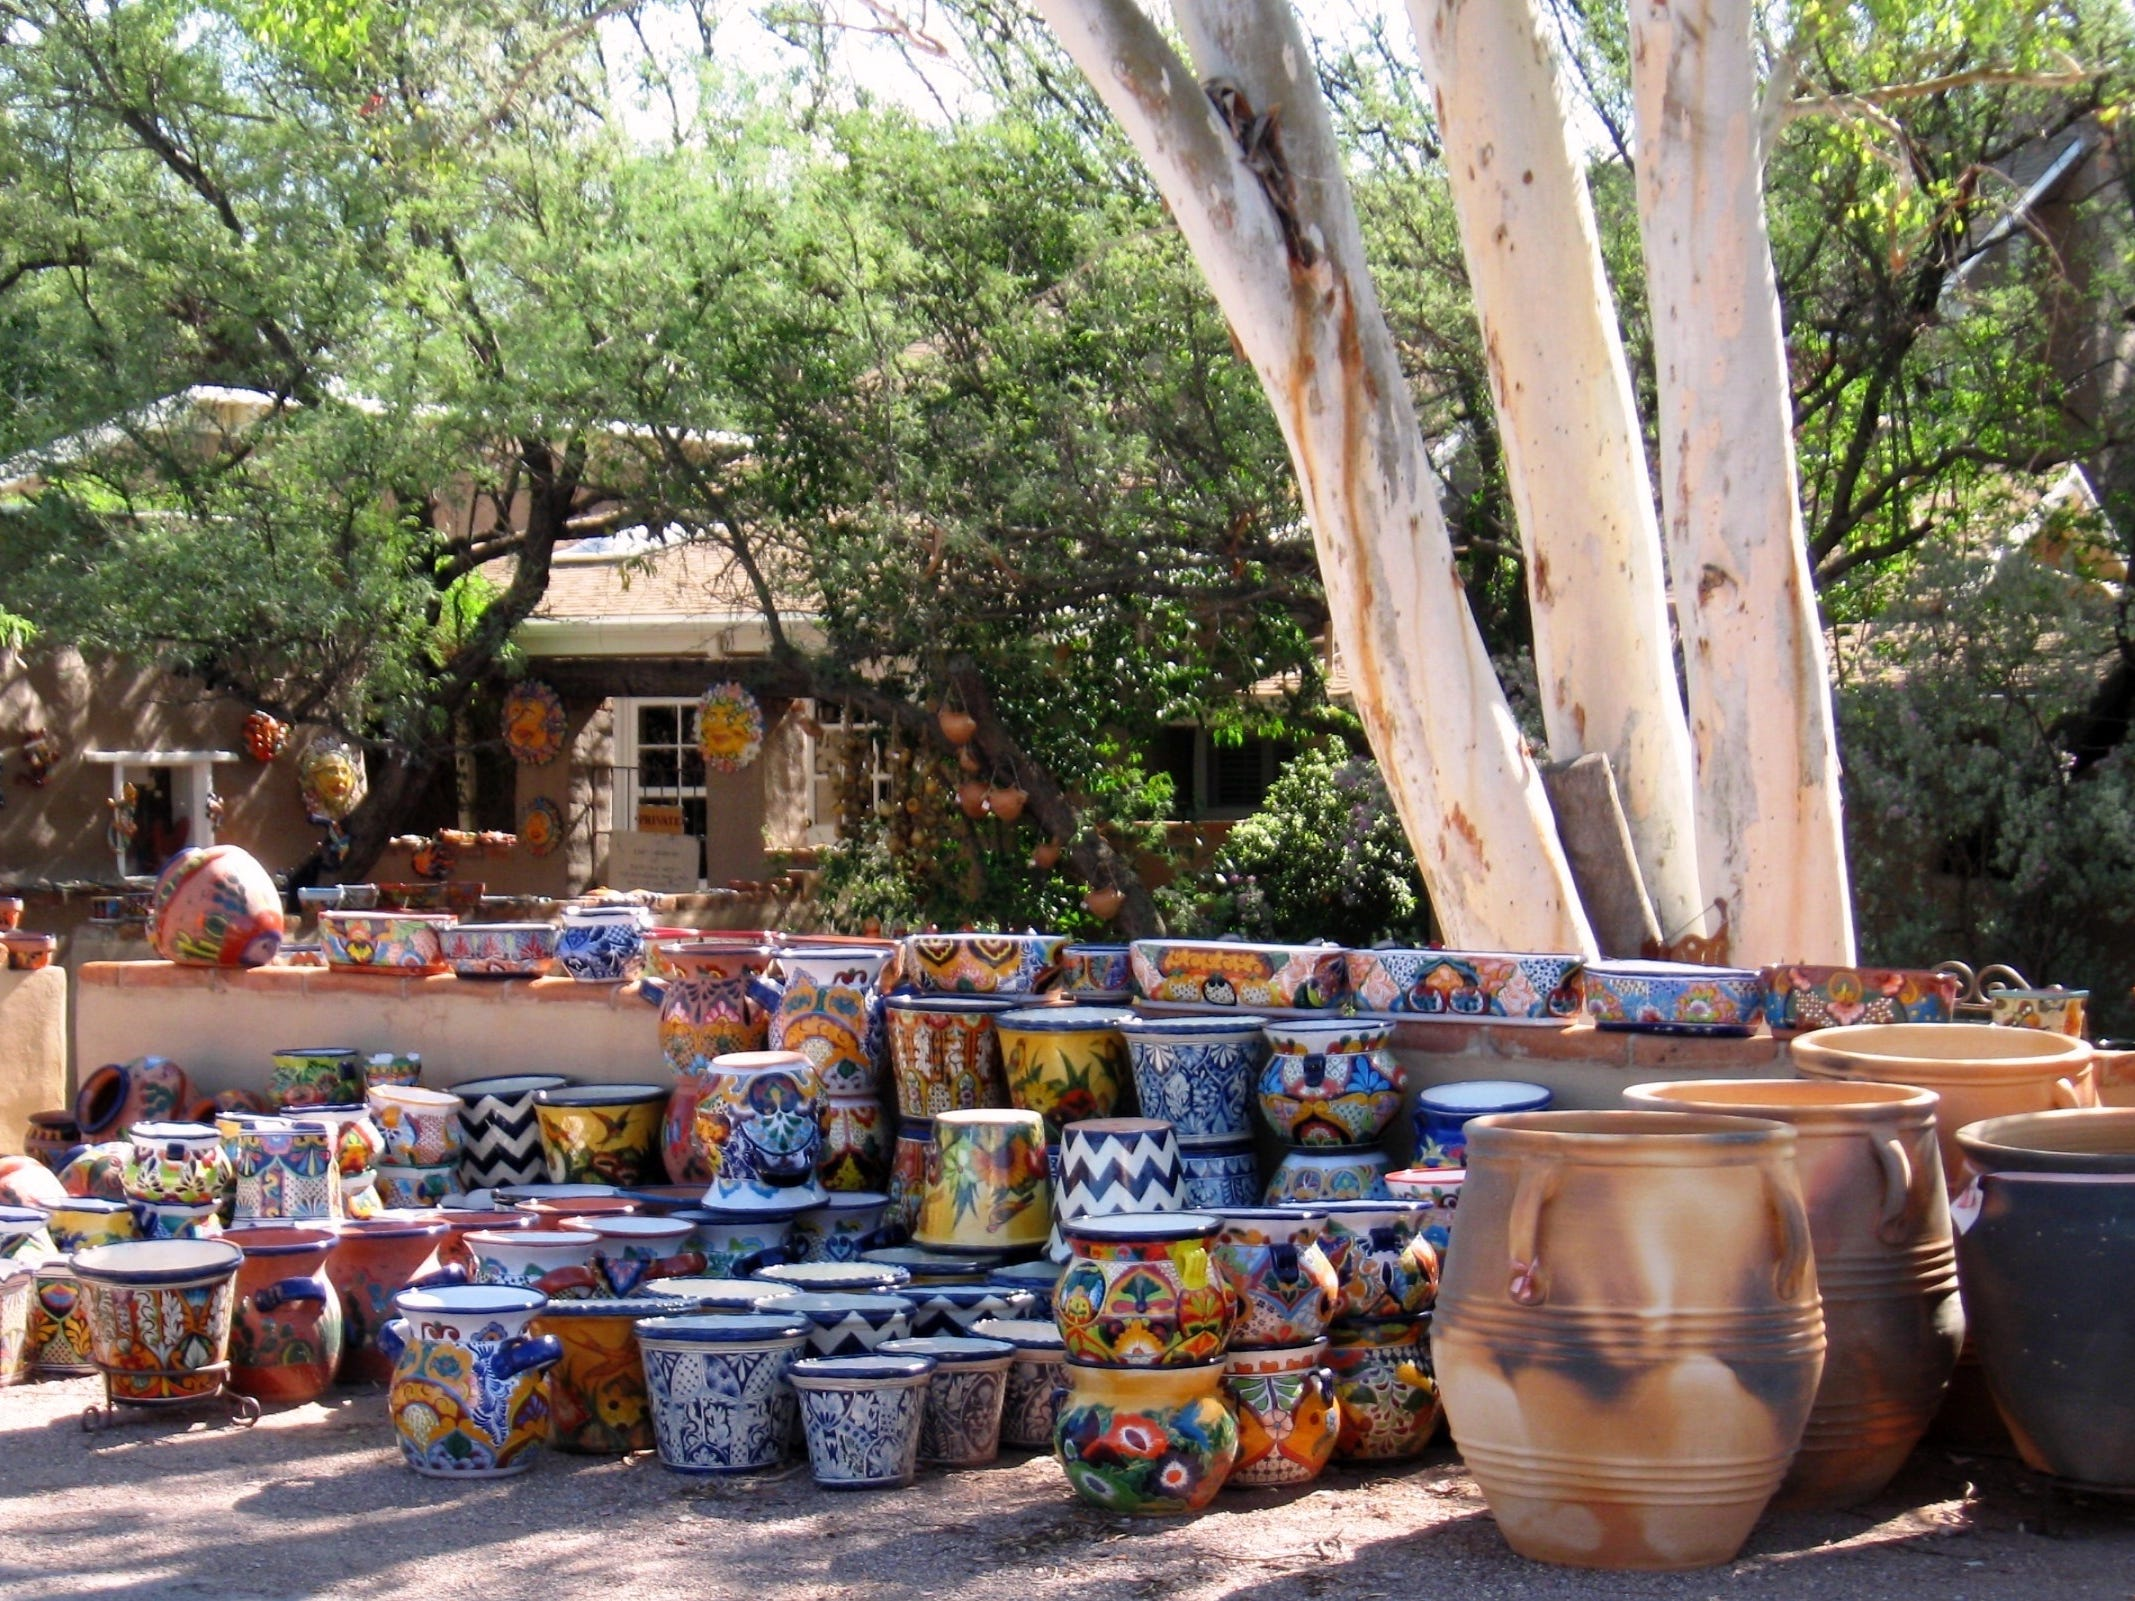 Tubac | Today, more than 80 art galleries and shops are clustered in the village plaza where old adobes, shady courtyards and ocotillo fences blend seamlessly with a handful of newer buildings. | Thanksgiving weekend bonus: The Tubac Fall Art Walk is from 10 a.m.-5 p.m. Nov. 23, with demonstrations, receptions and special events all day. | Details: 520-398-2704, www.tubacaz.com.